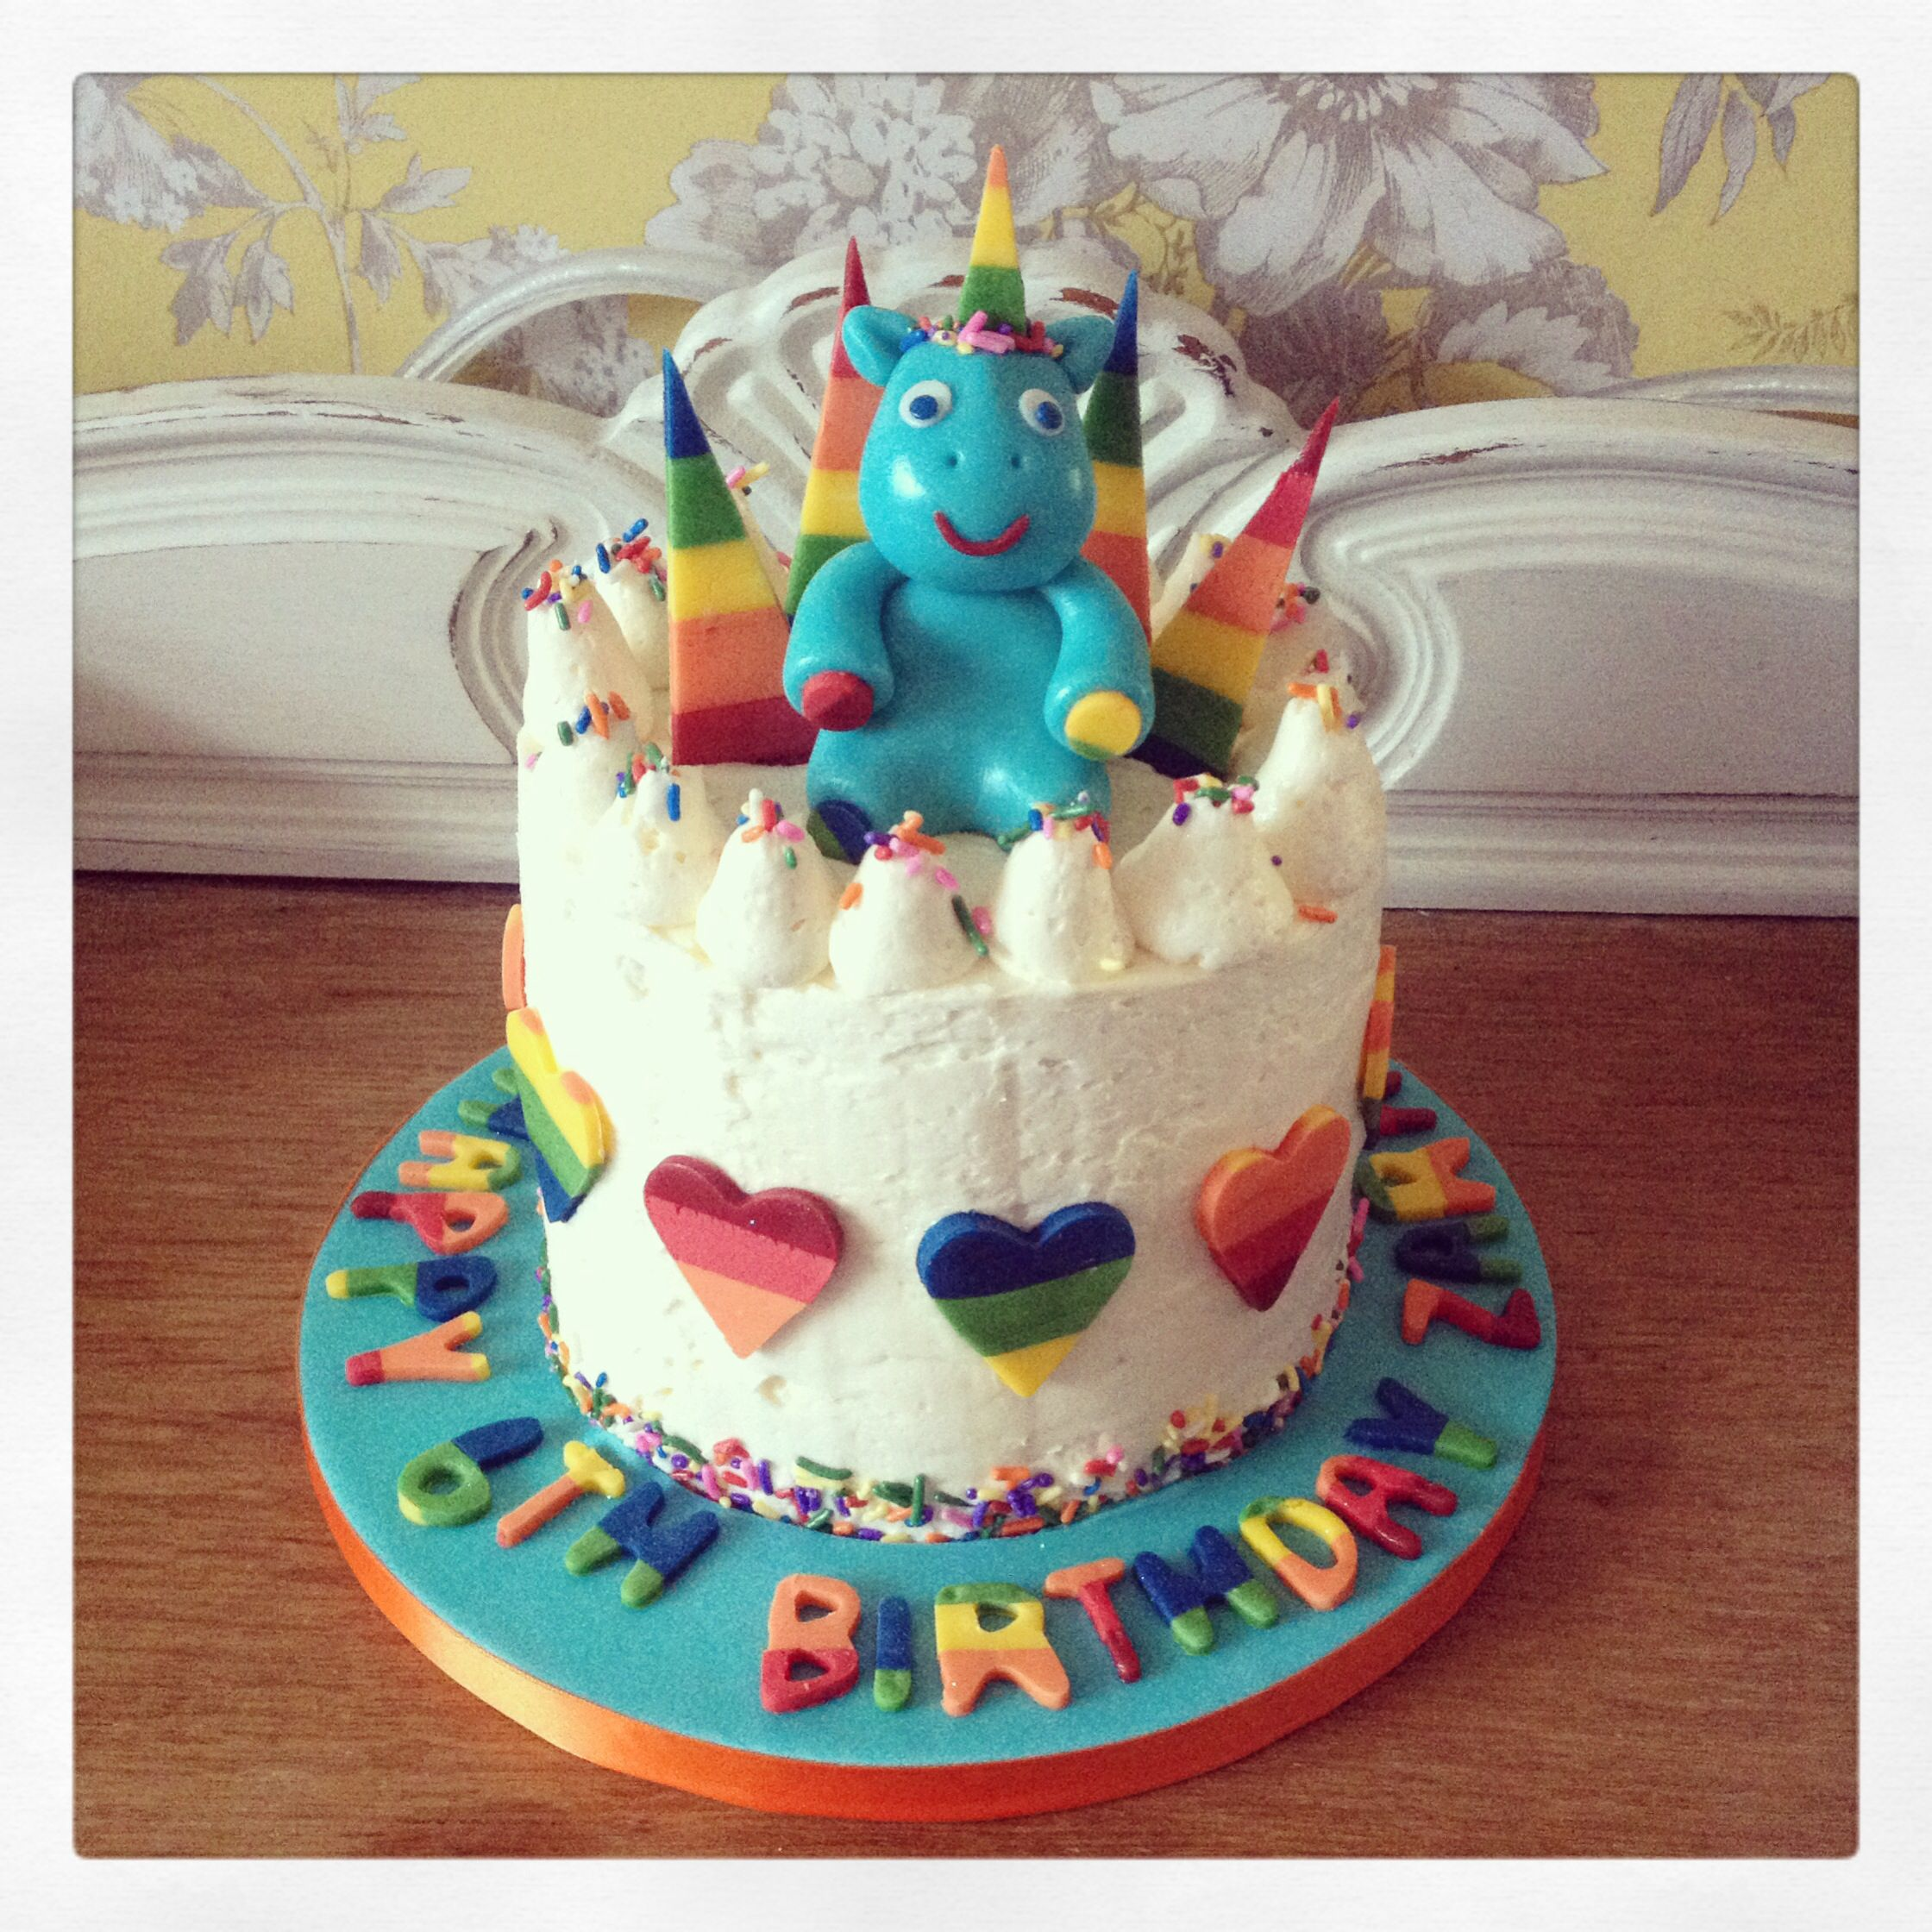 Unicorn and rainbows birthday cake Hidden surprise rainbow sponge